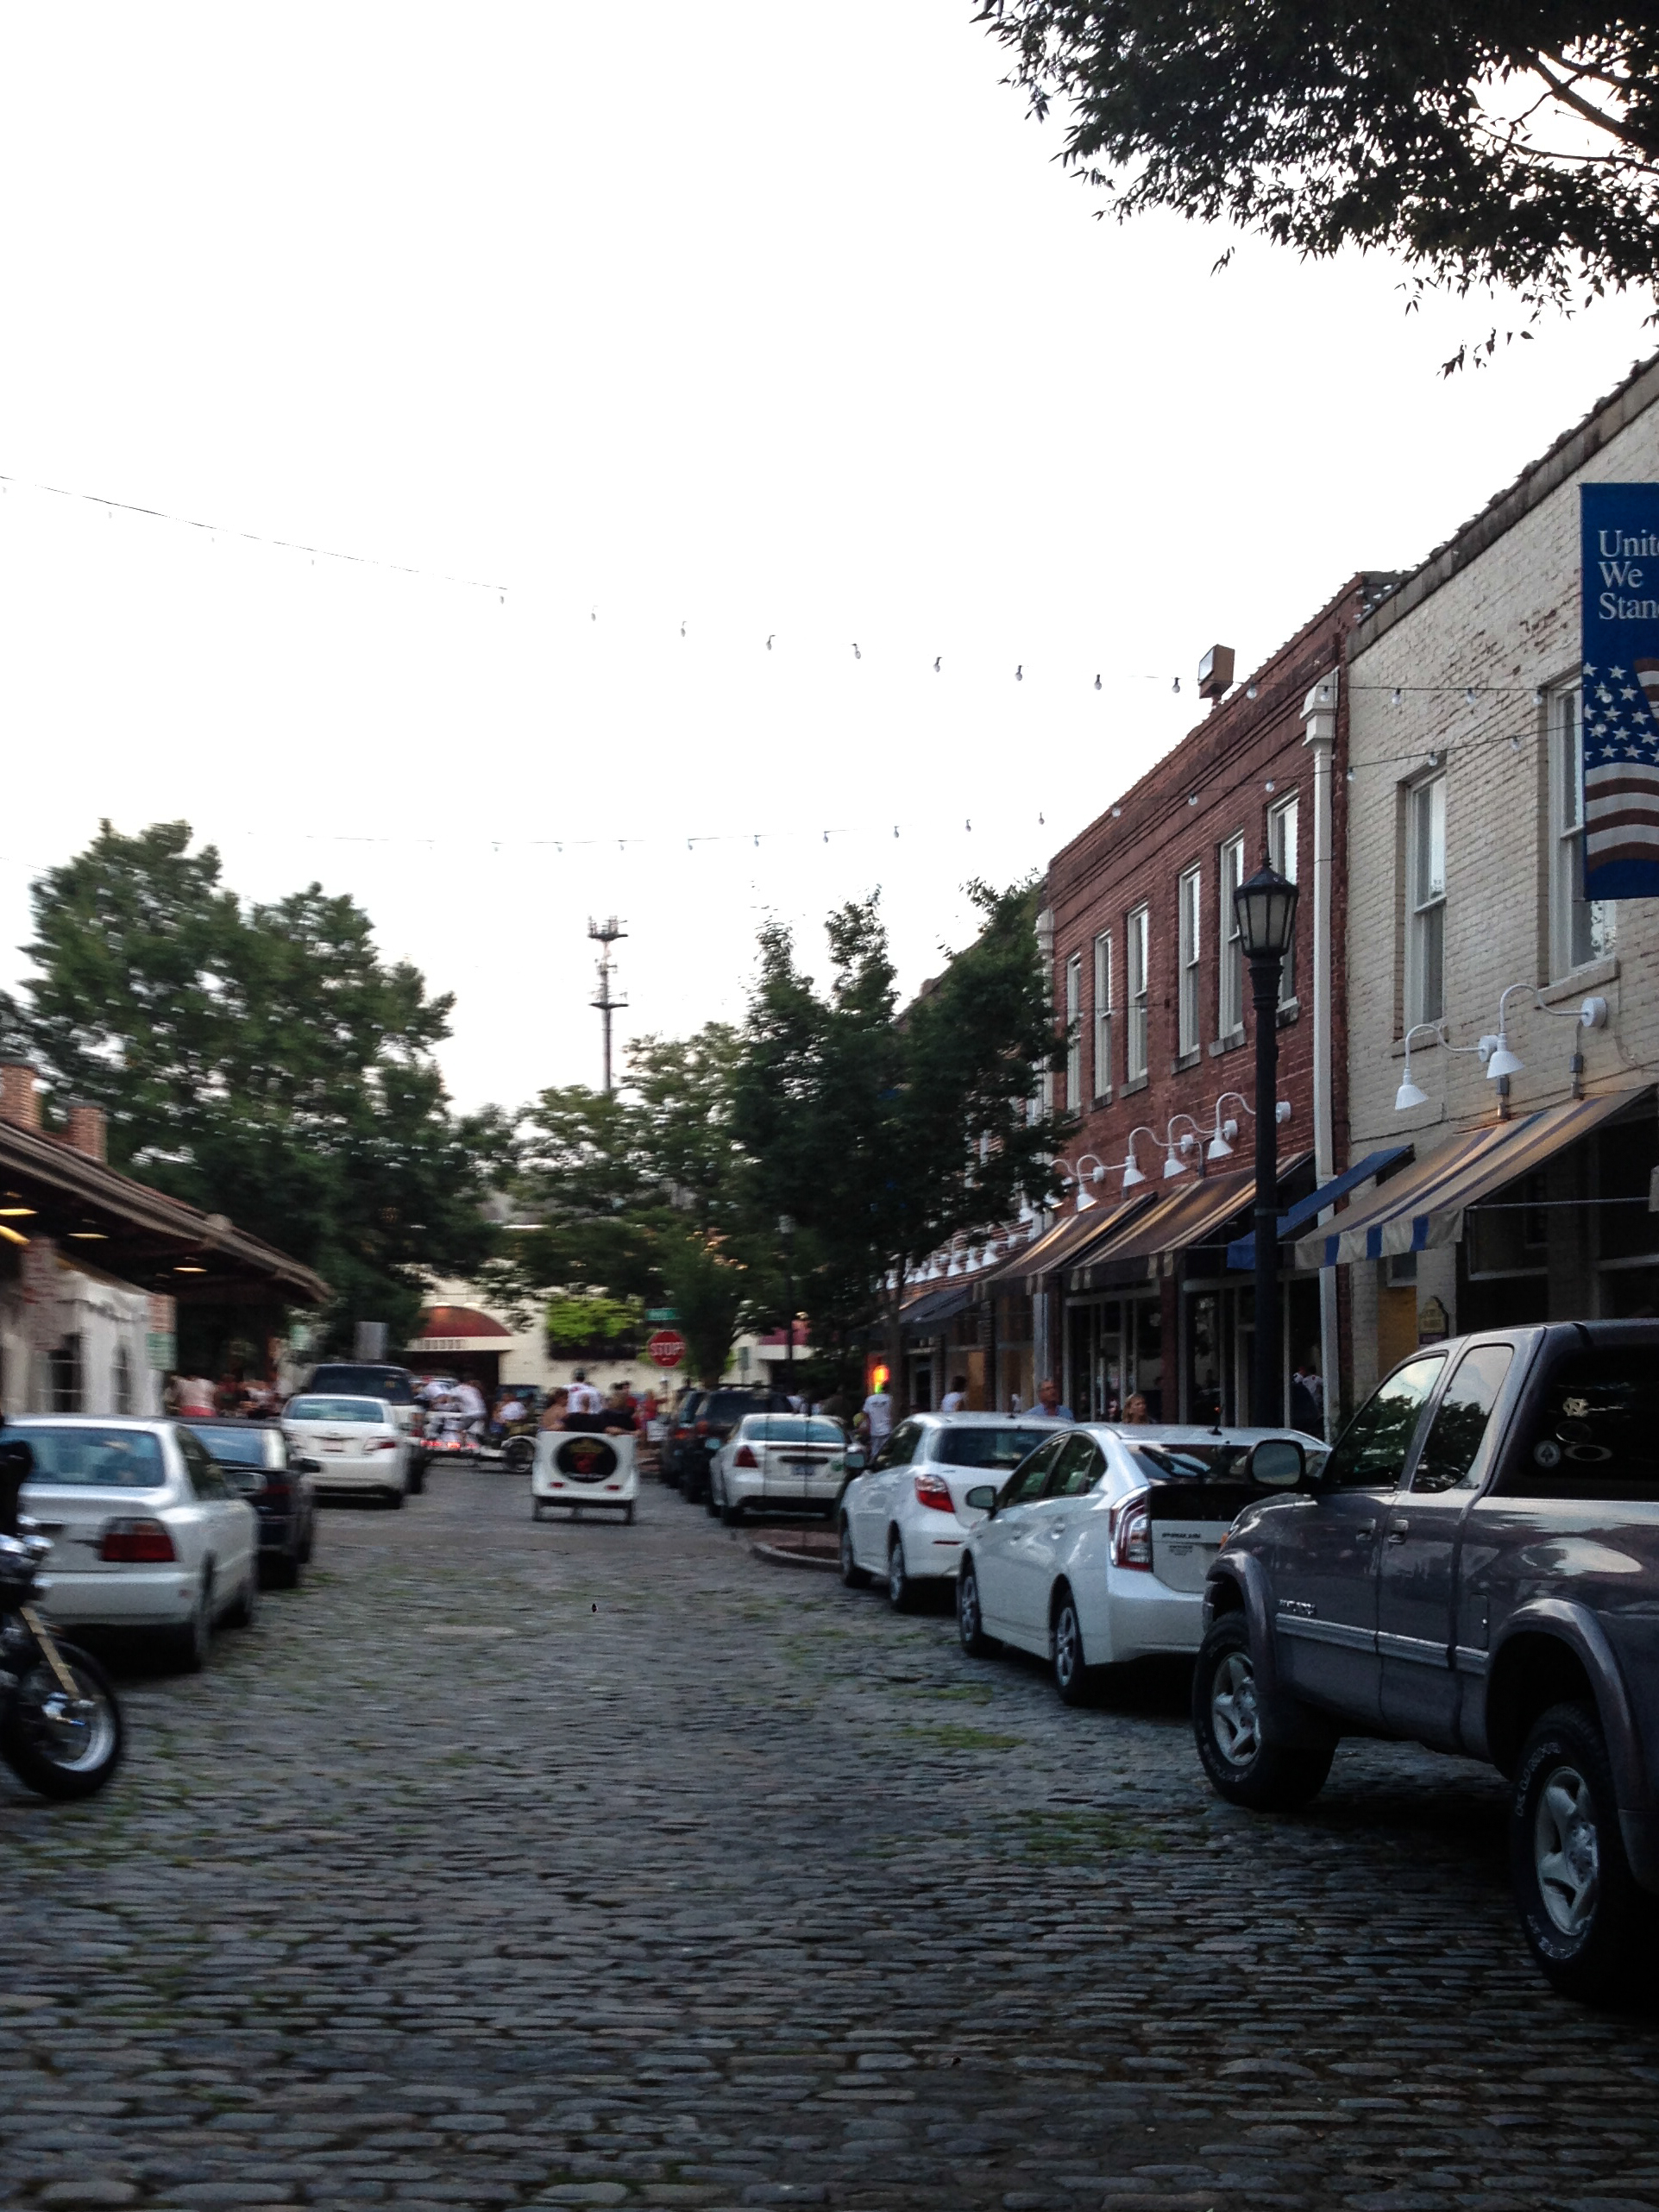 2013-08-raleigh-first-friday-1438-jpg